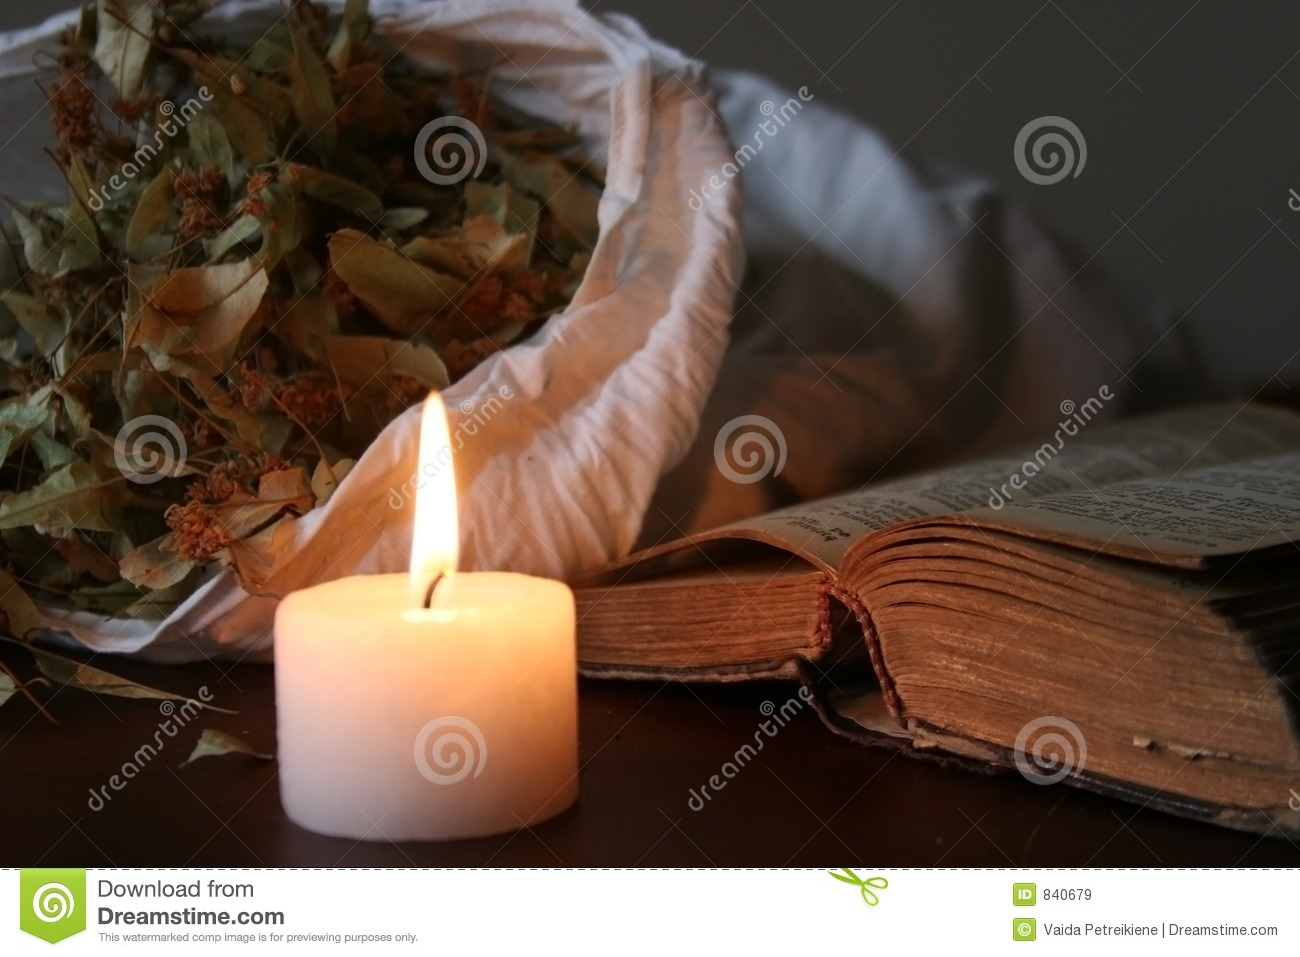 Candle, Book and Other